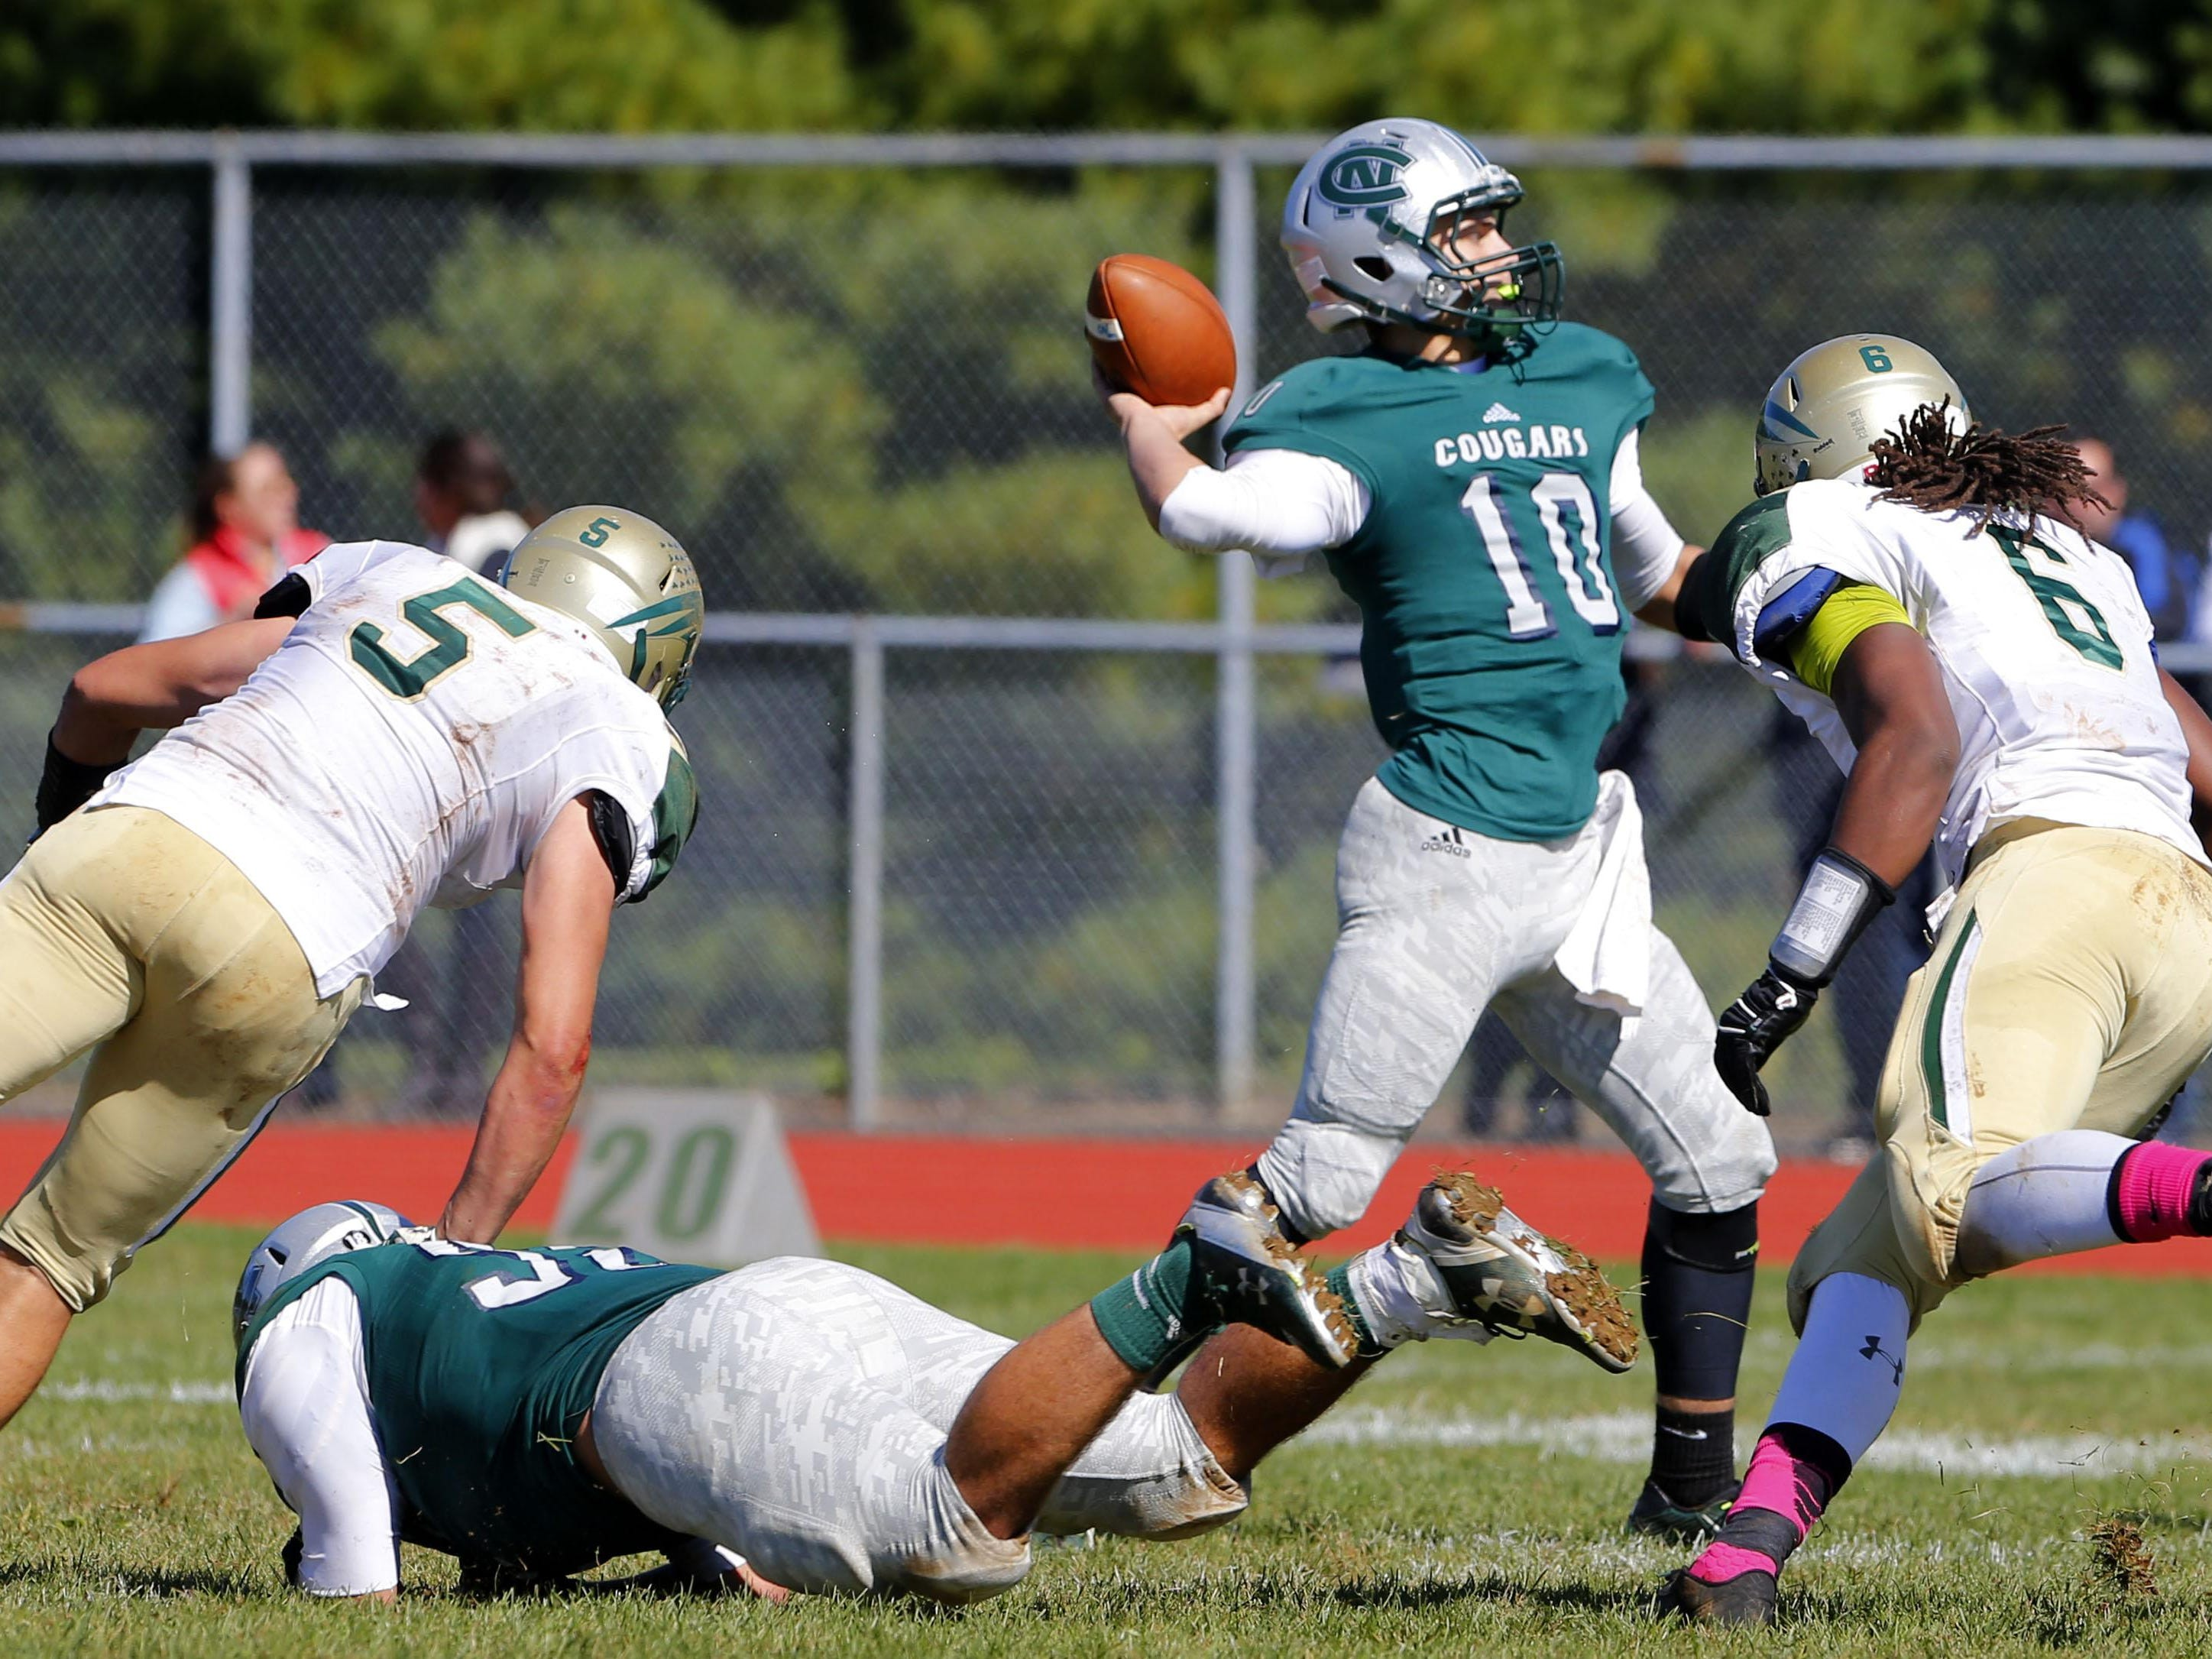 Haden Volk (10 ) of Colts Neck throws a pass to Matt Volk (3) during game against Red Bank Catholic at Colts Neck High School, Colts Neck,NJ. Saturday, October 10, 2015.